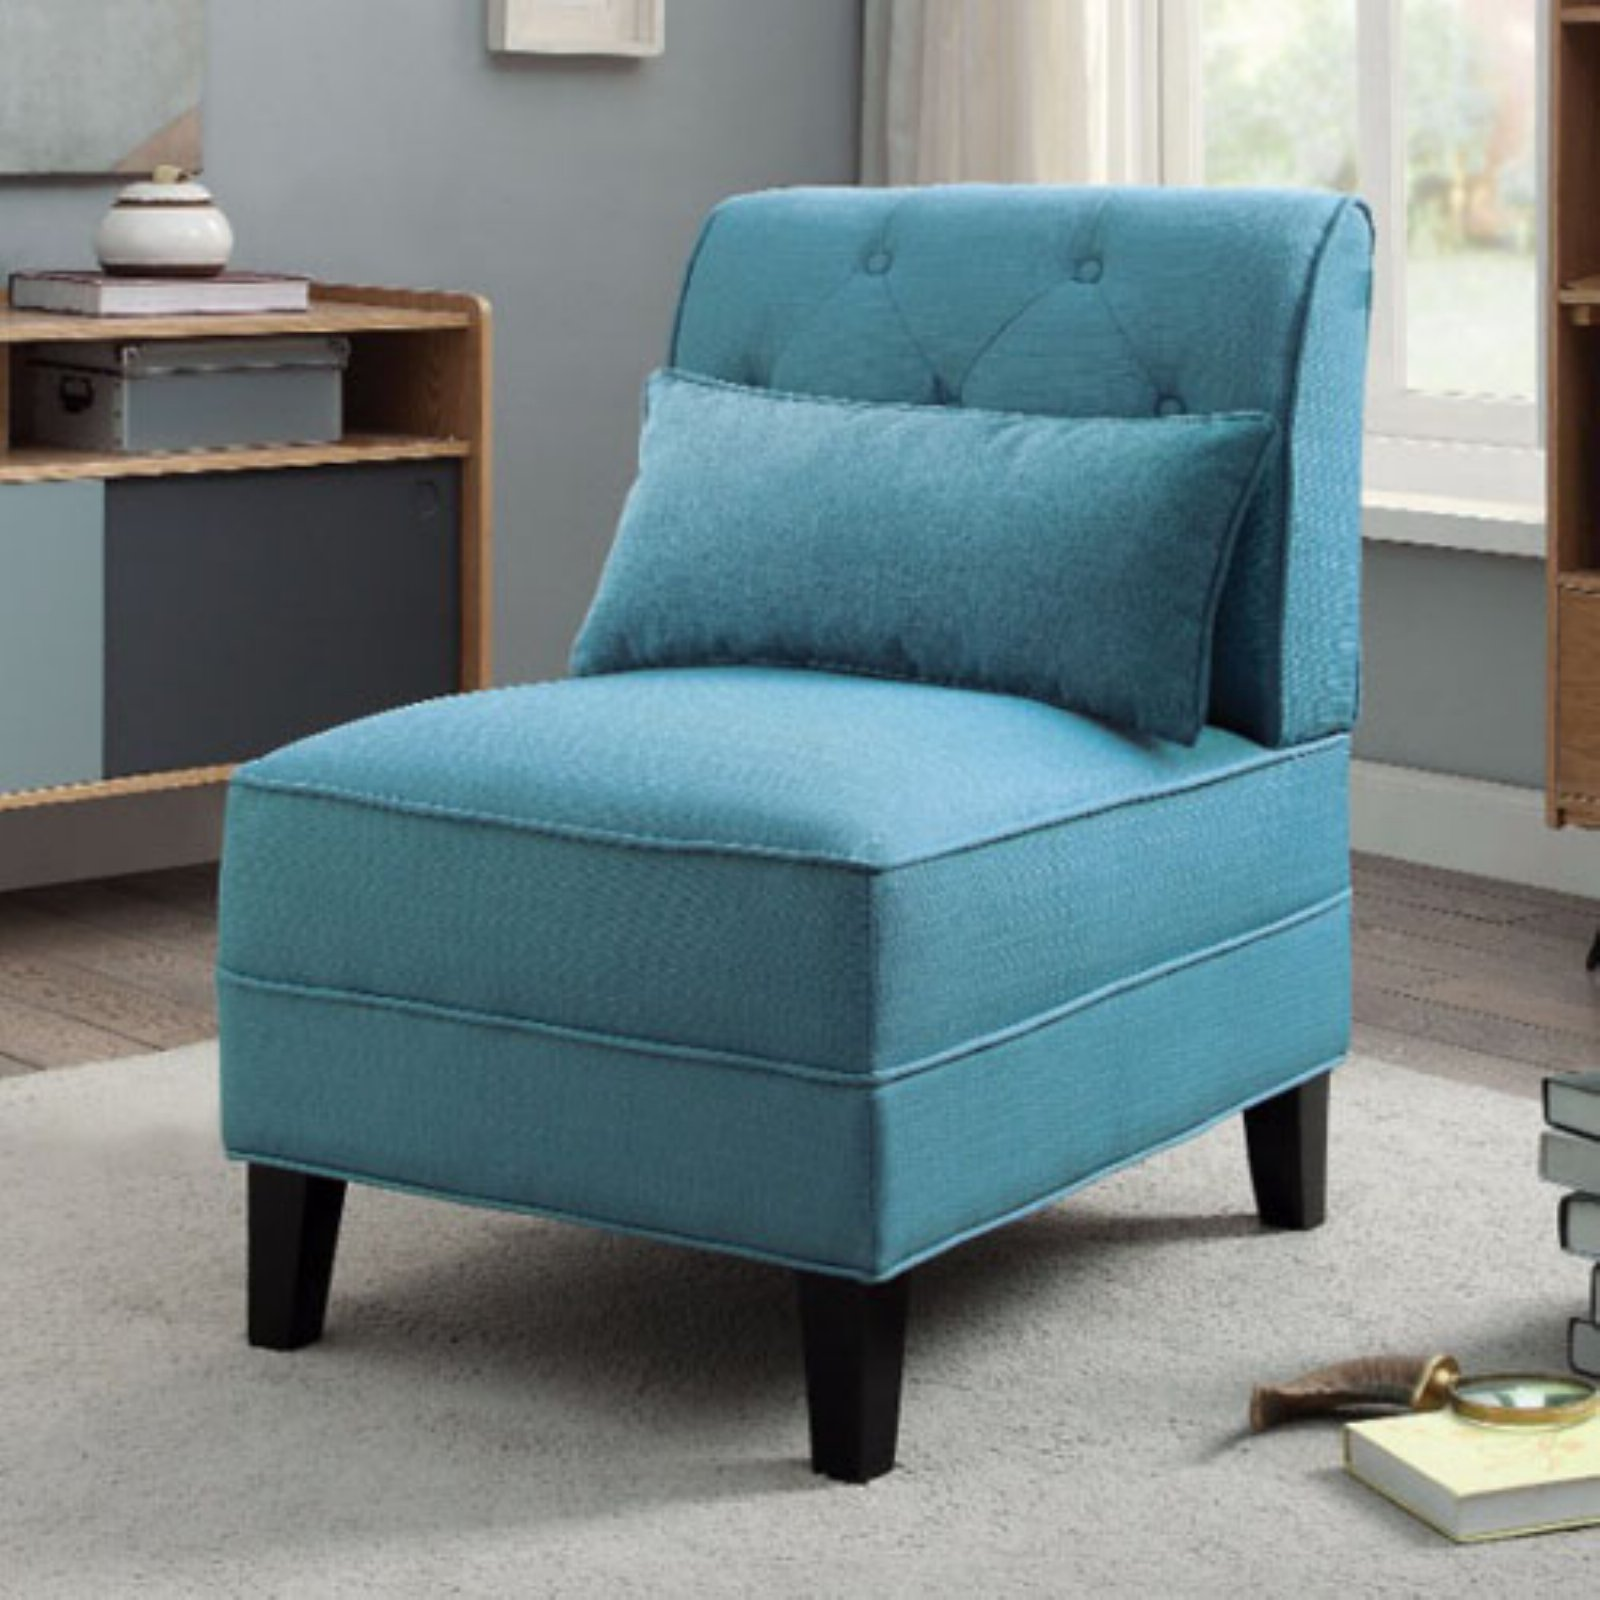 Best Benzara Tufted Armless Accent Chair With Pillow Light Blue 400 x 300